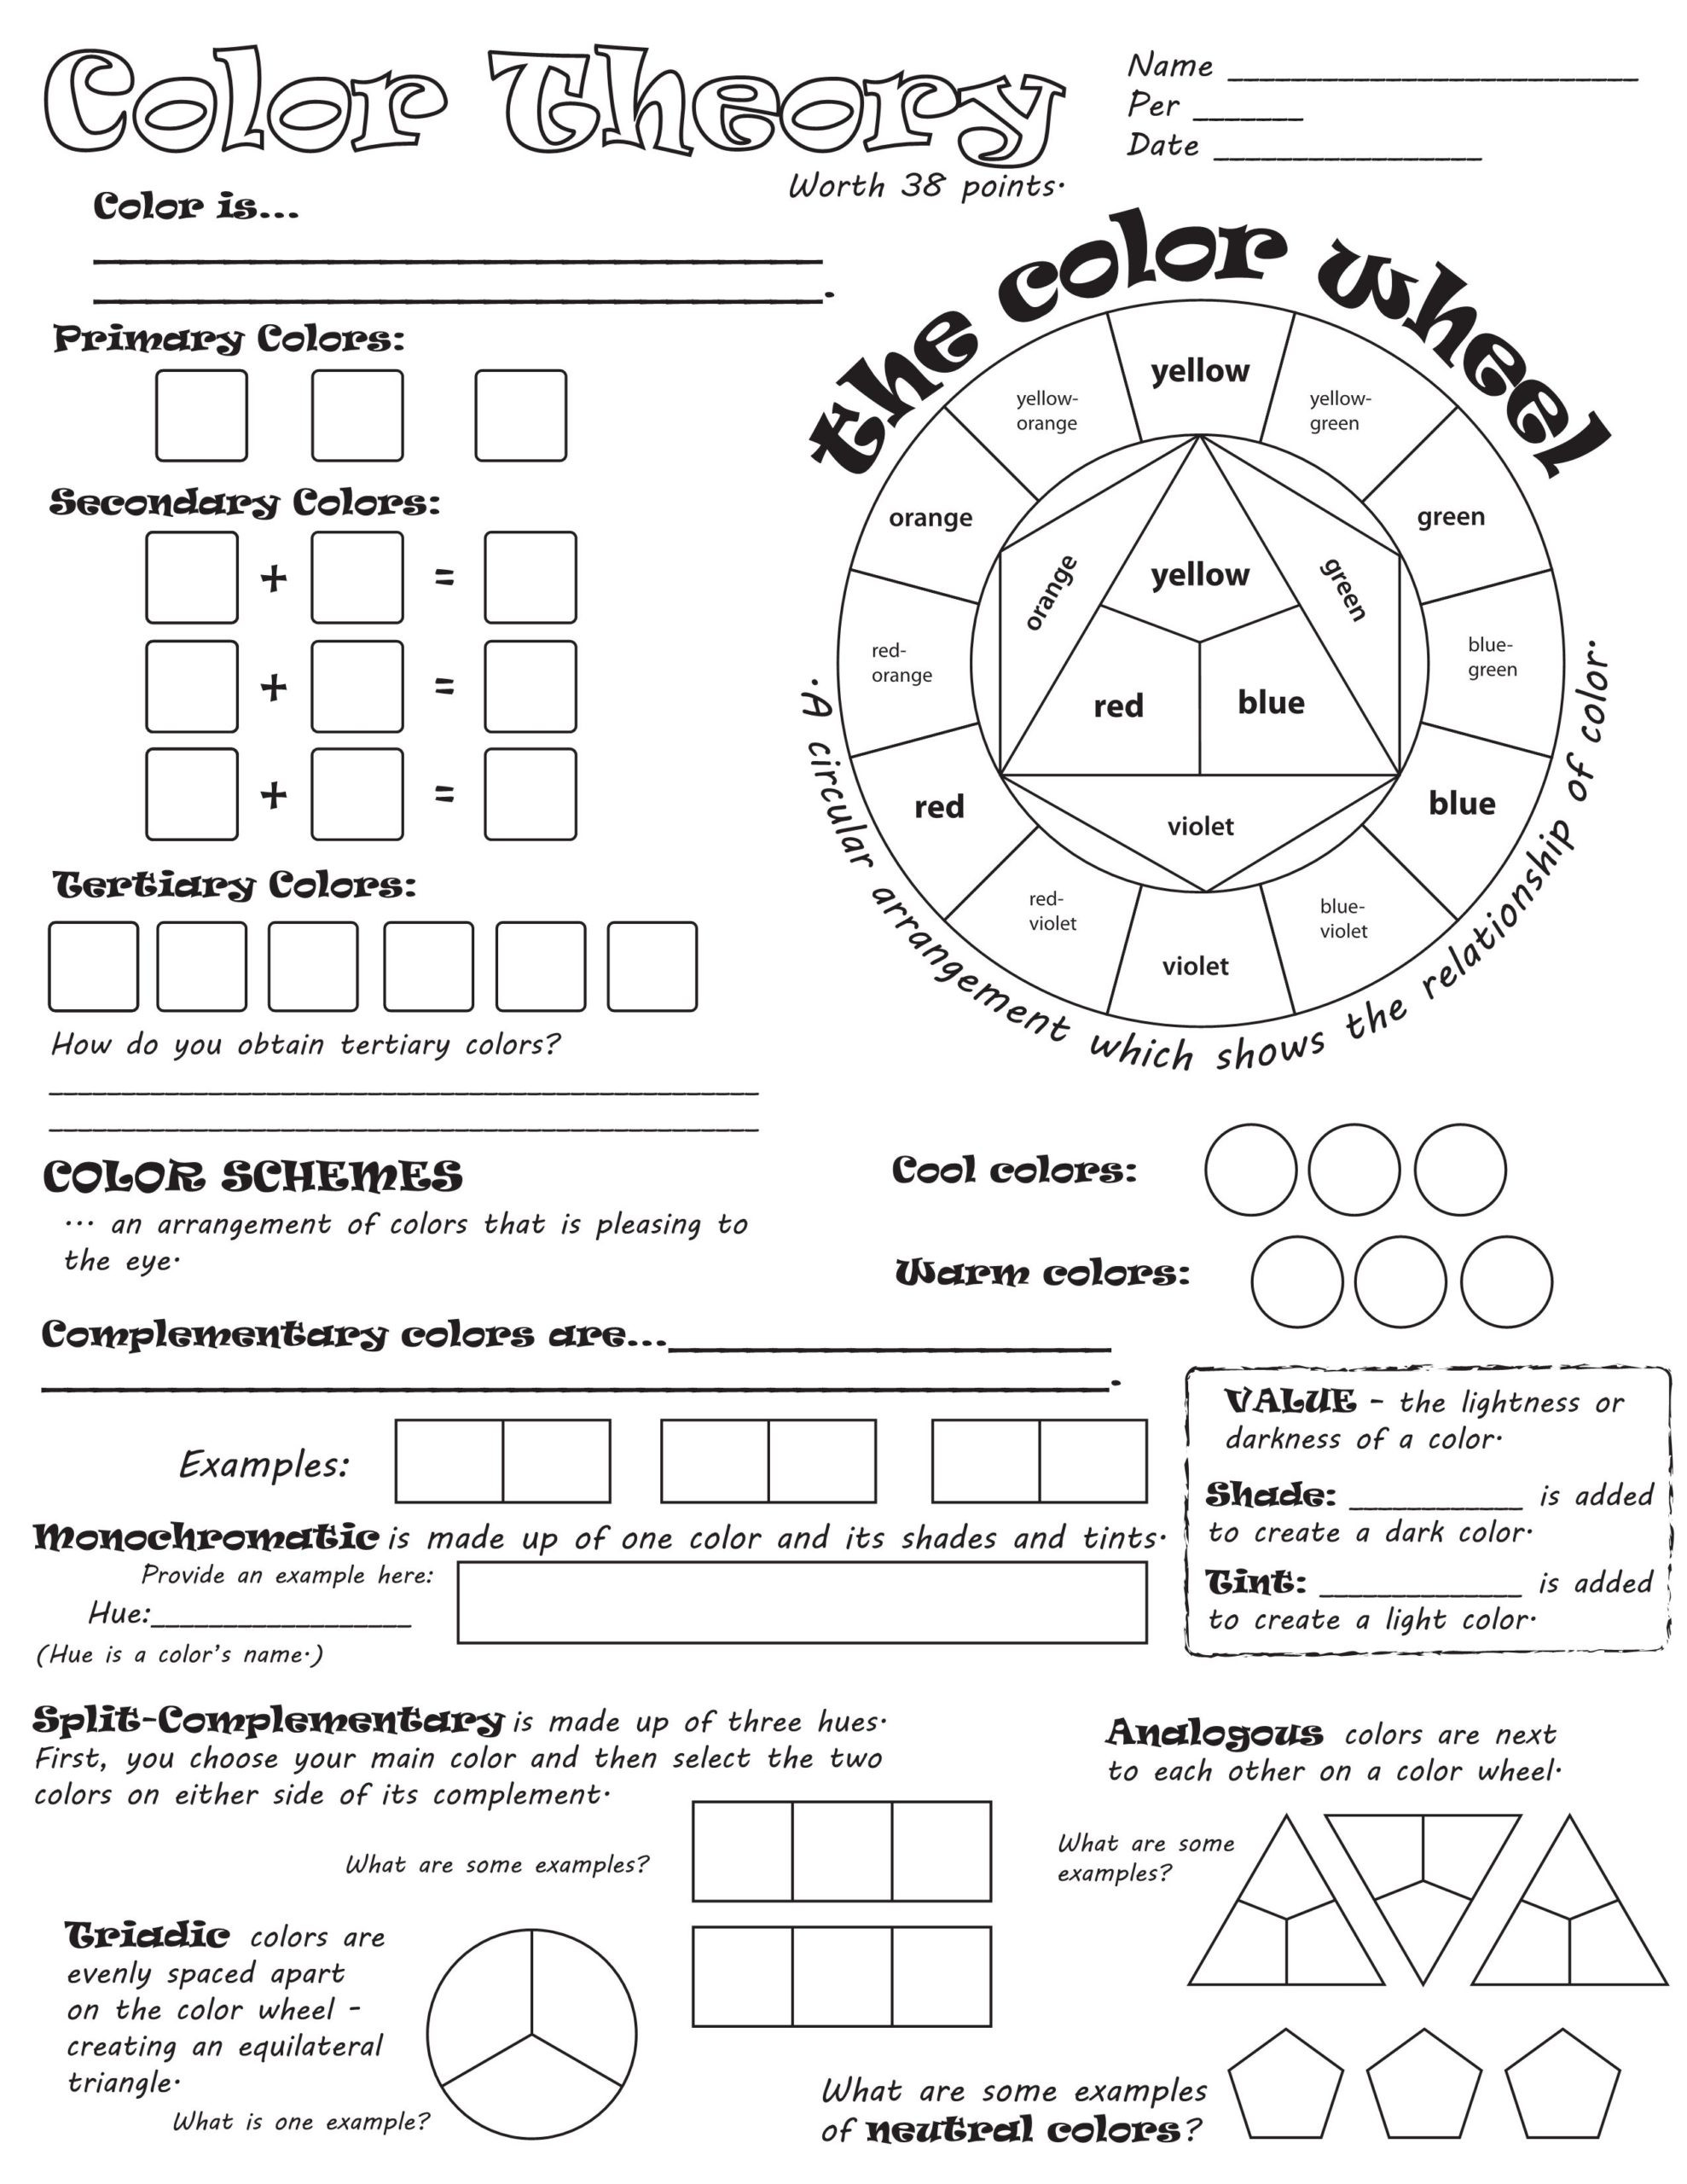 Analogy Worksheets for Middle School Easy Algebra Problems Useful and Harmful Materials